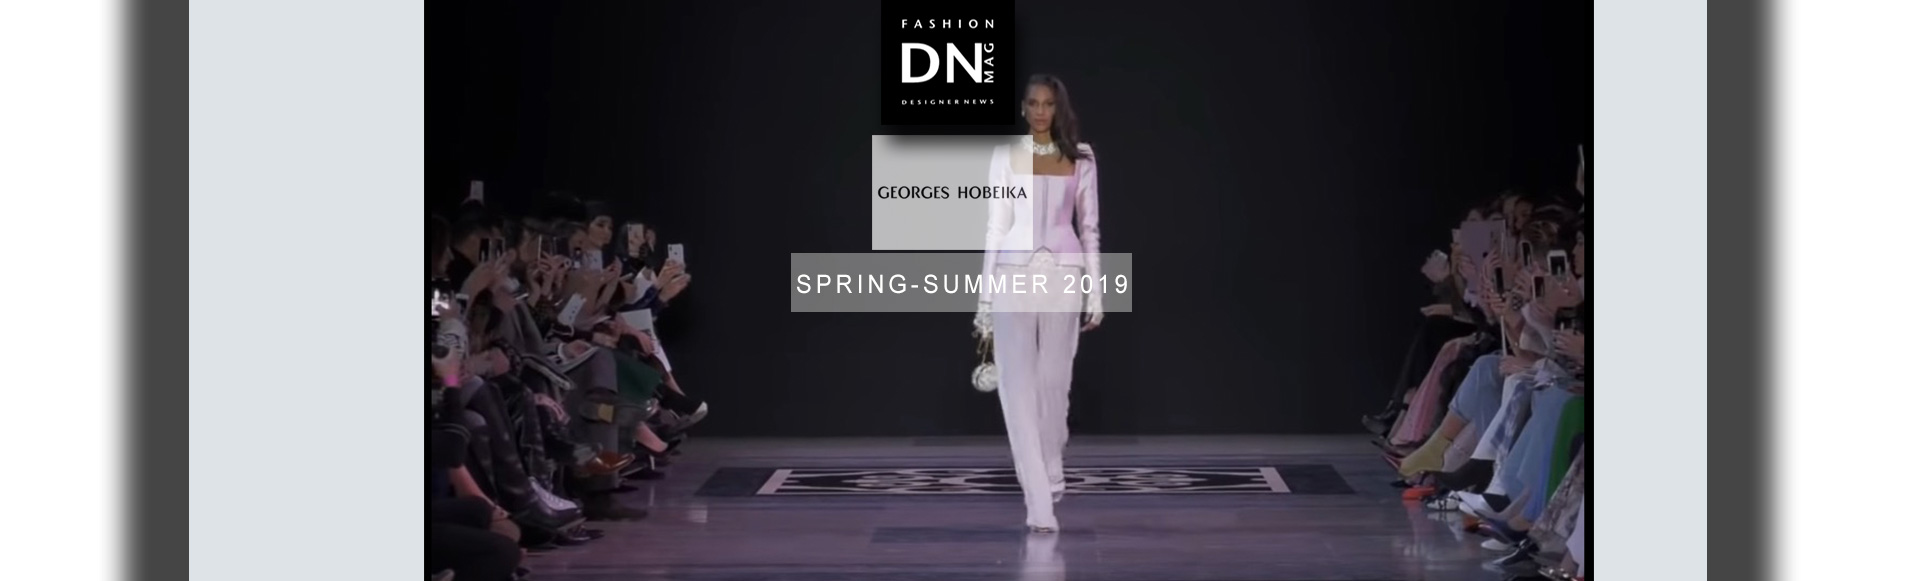 DNMAG-georges-hobeika-SS19